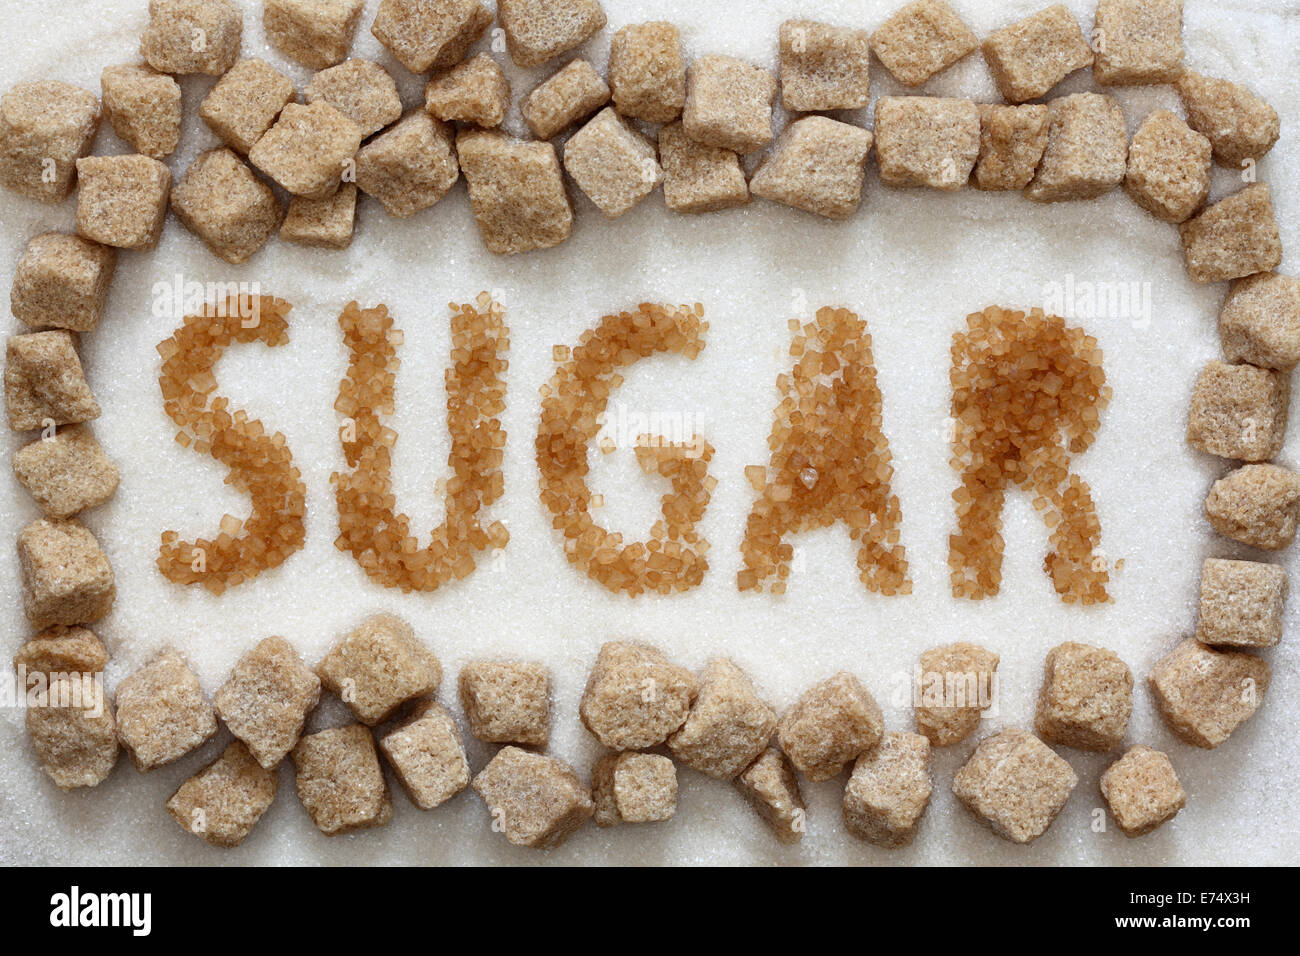 The word 'sugar' written with sugar cane on white sugar background and brown cane sugar cubes. Close-up. - Stock Image